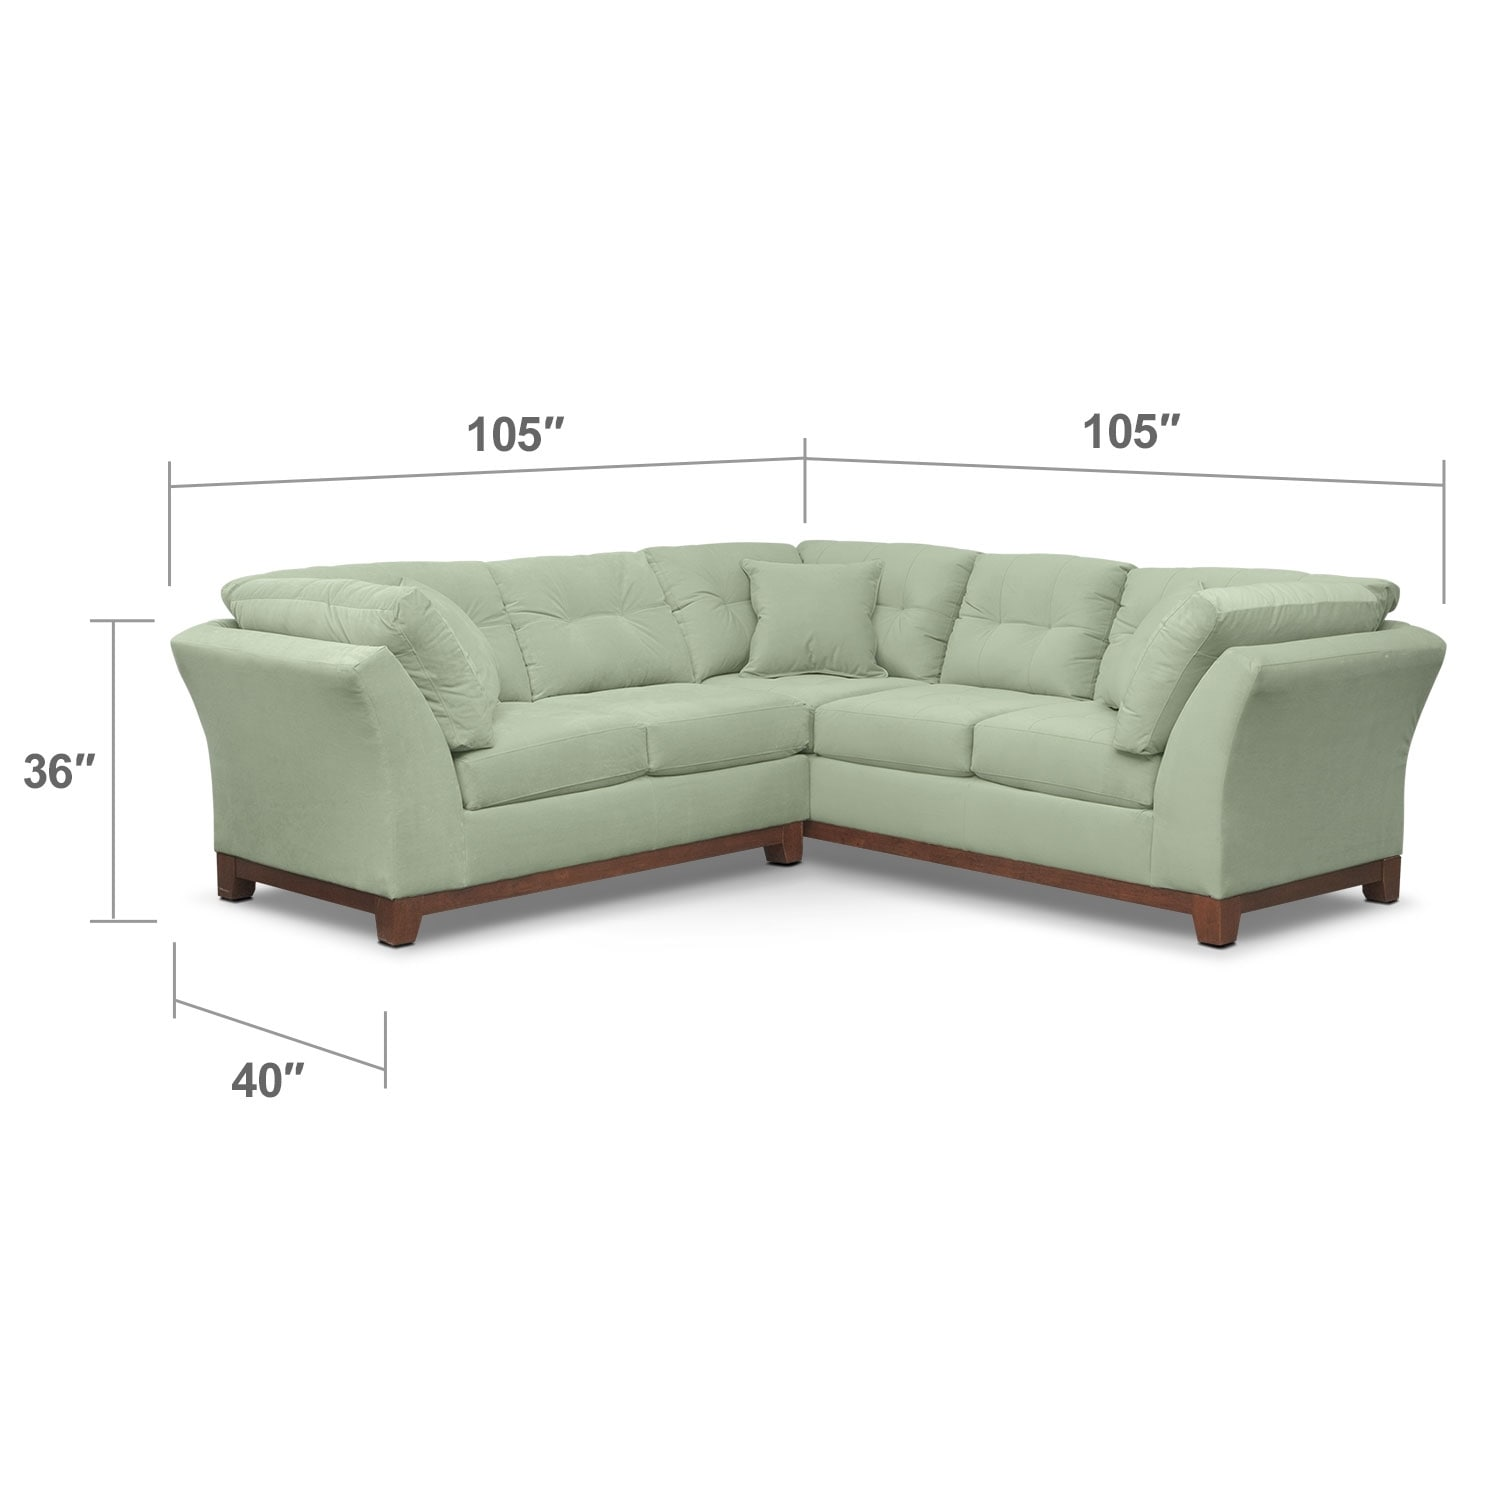 """Living Room Furniture - Solace 2-Piece Right-Facing 105"""" Sofa Sectional - Spa"""